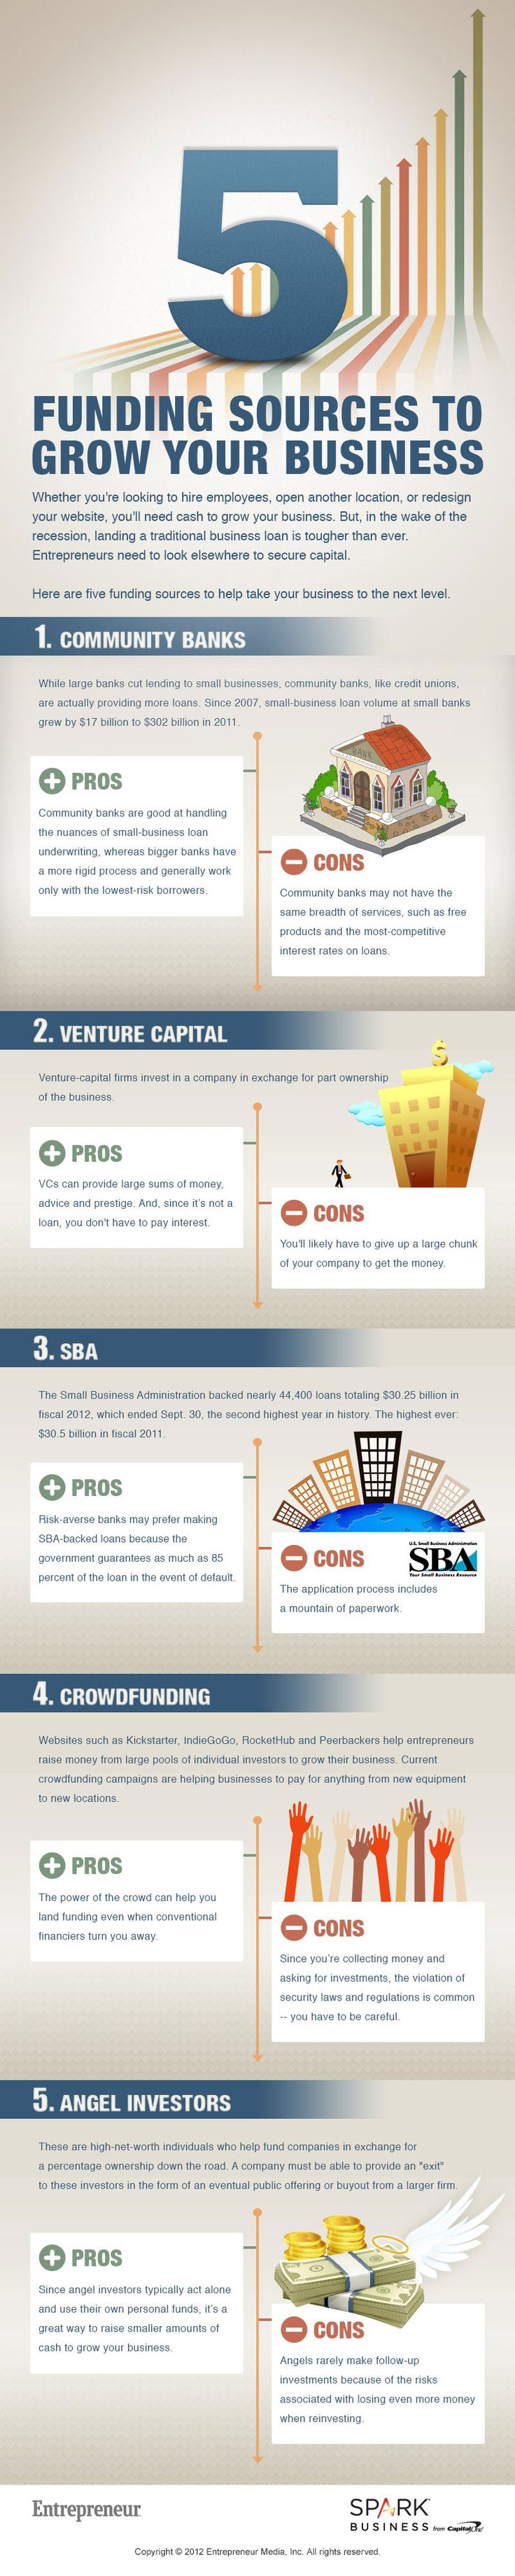 5 Funding Sources to Grow Your Business #Infographic via @Entrepreneur Magazine